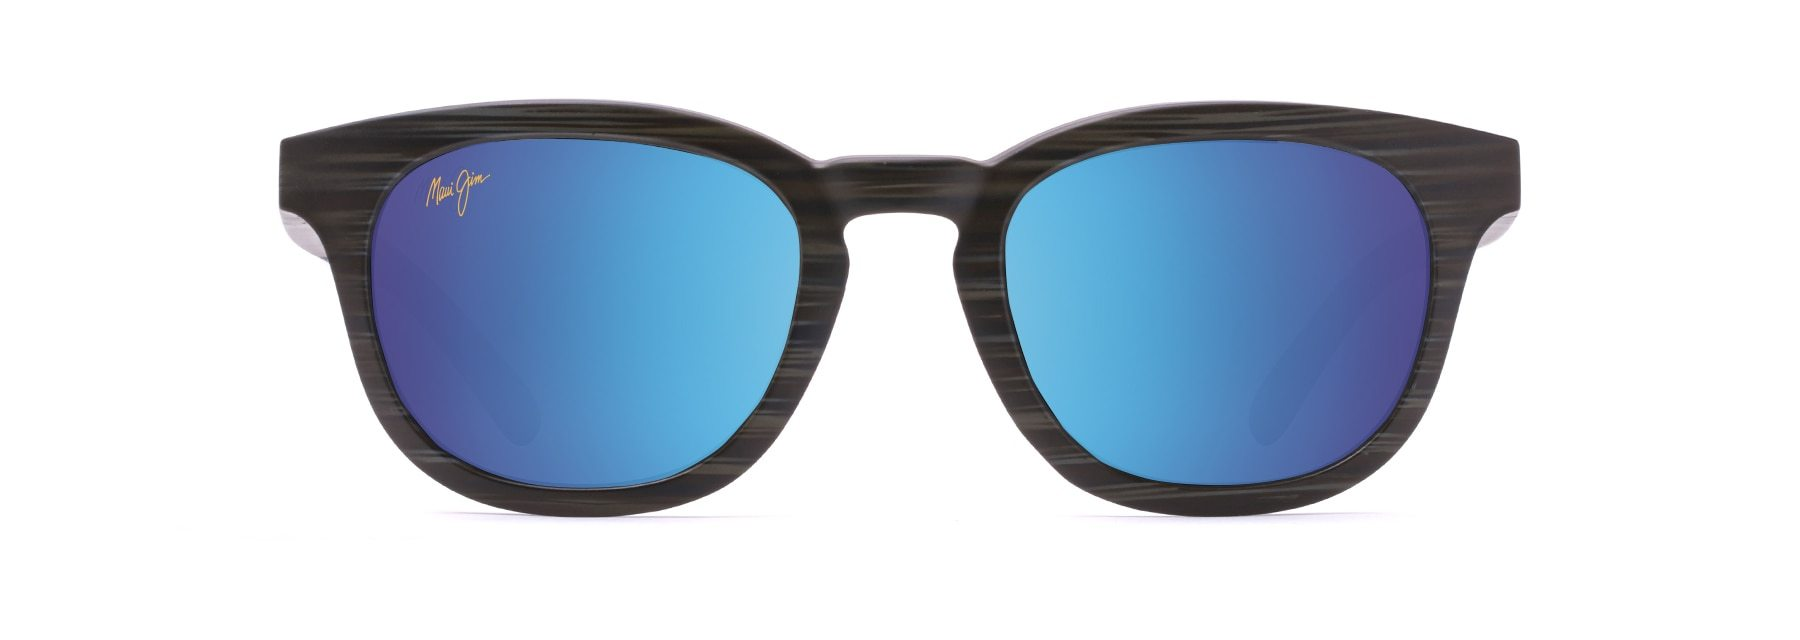 MyMaui Koko Head MM737-016 Sunglasses